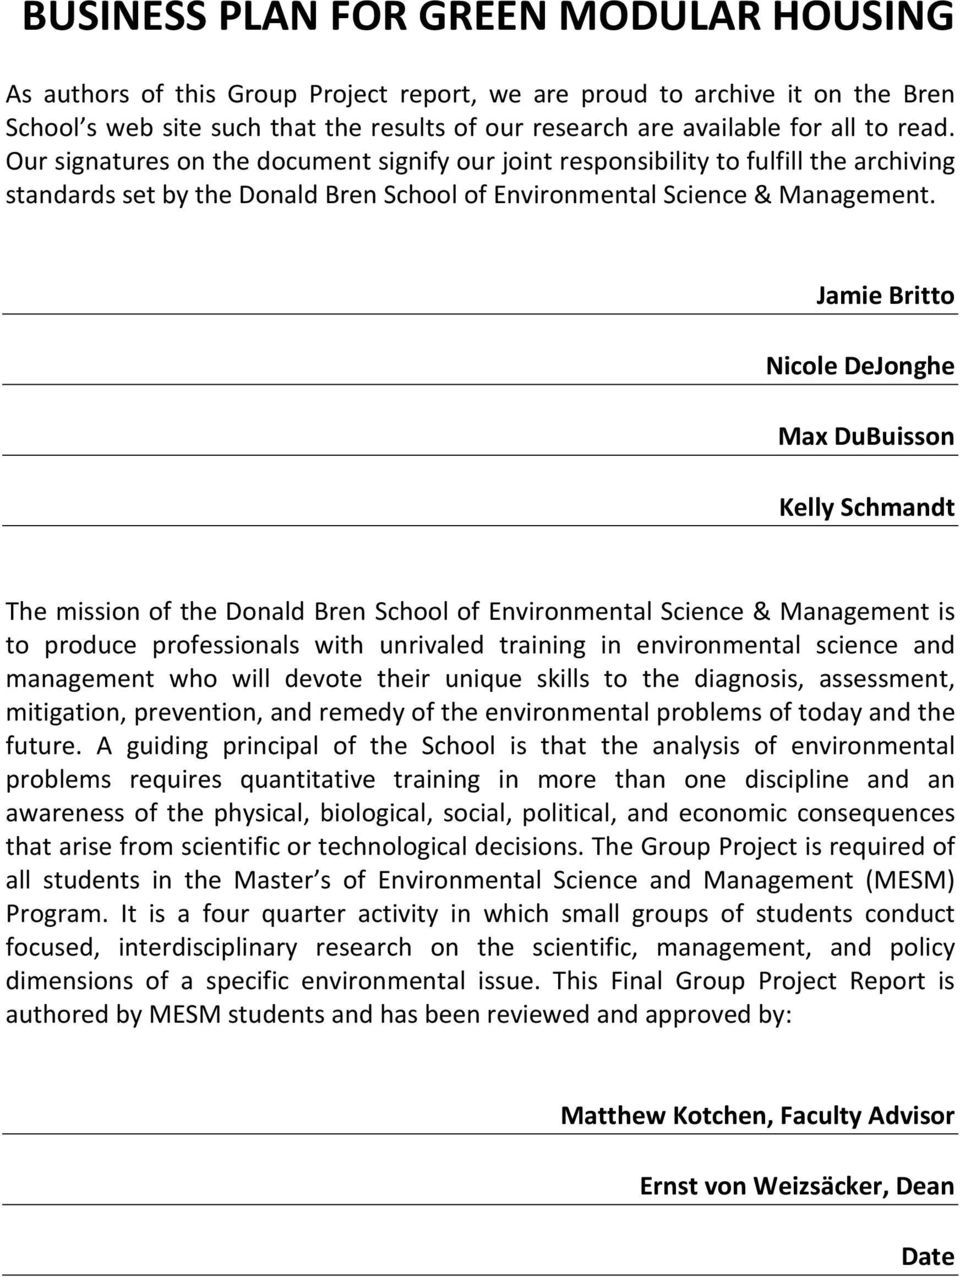 Jamie Britto Nicole DeJonghe Max DuBuisson Kelly Schmandt The mission of the Donald Bren School of Environmental Science & Management is to produce professionals with unrivaled training in